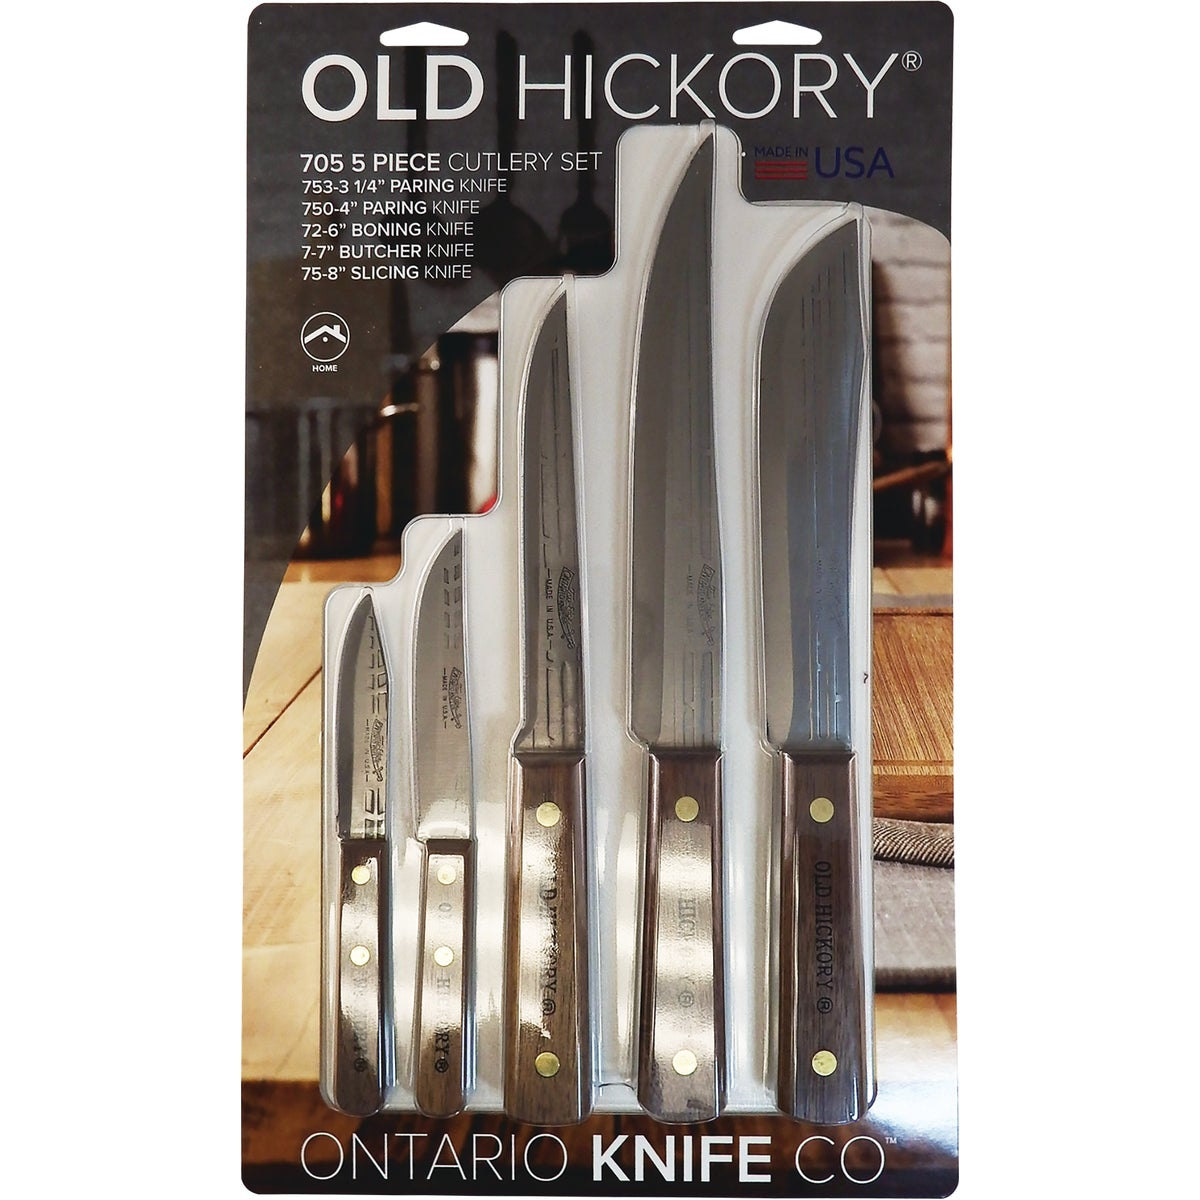 5 PIECE KNIFE SET - 7180 by Ontario Knife Co